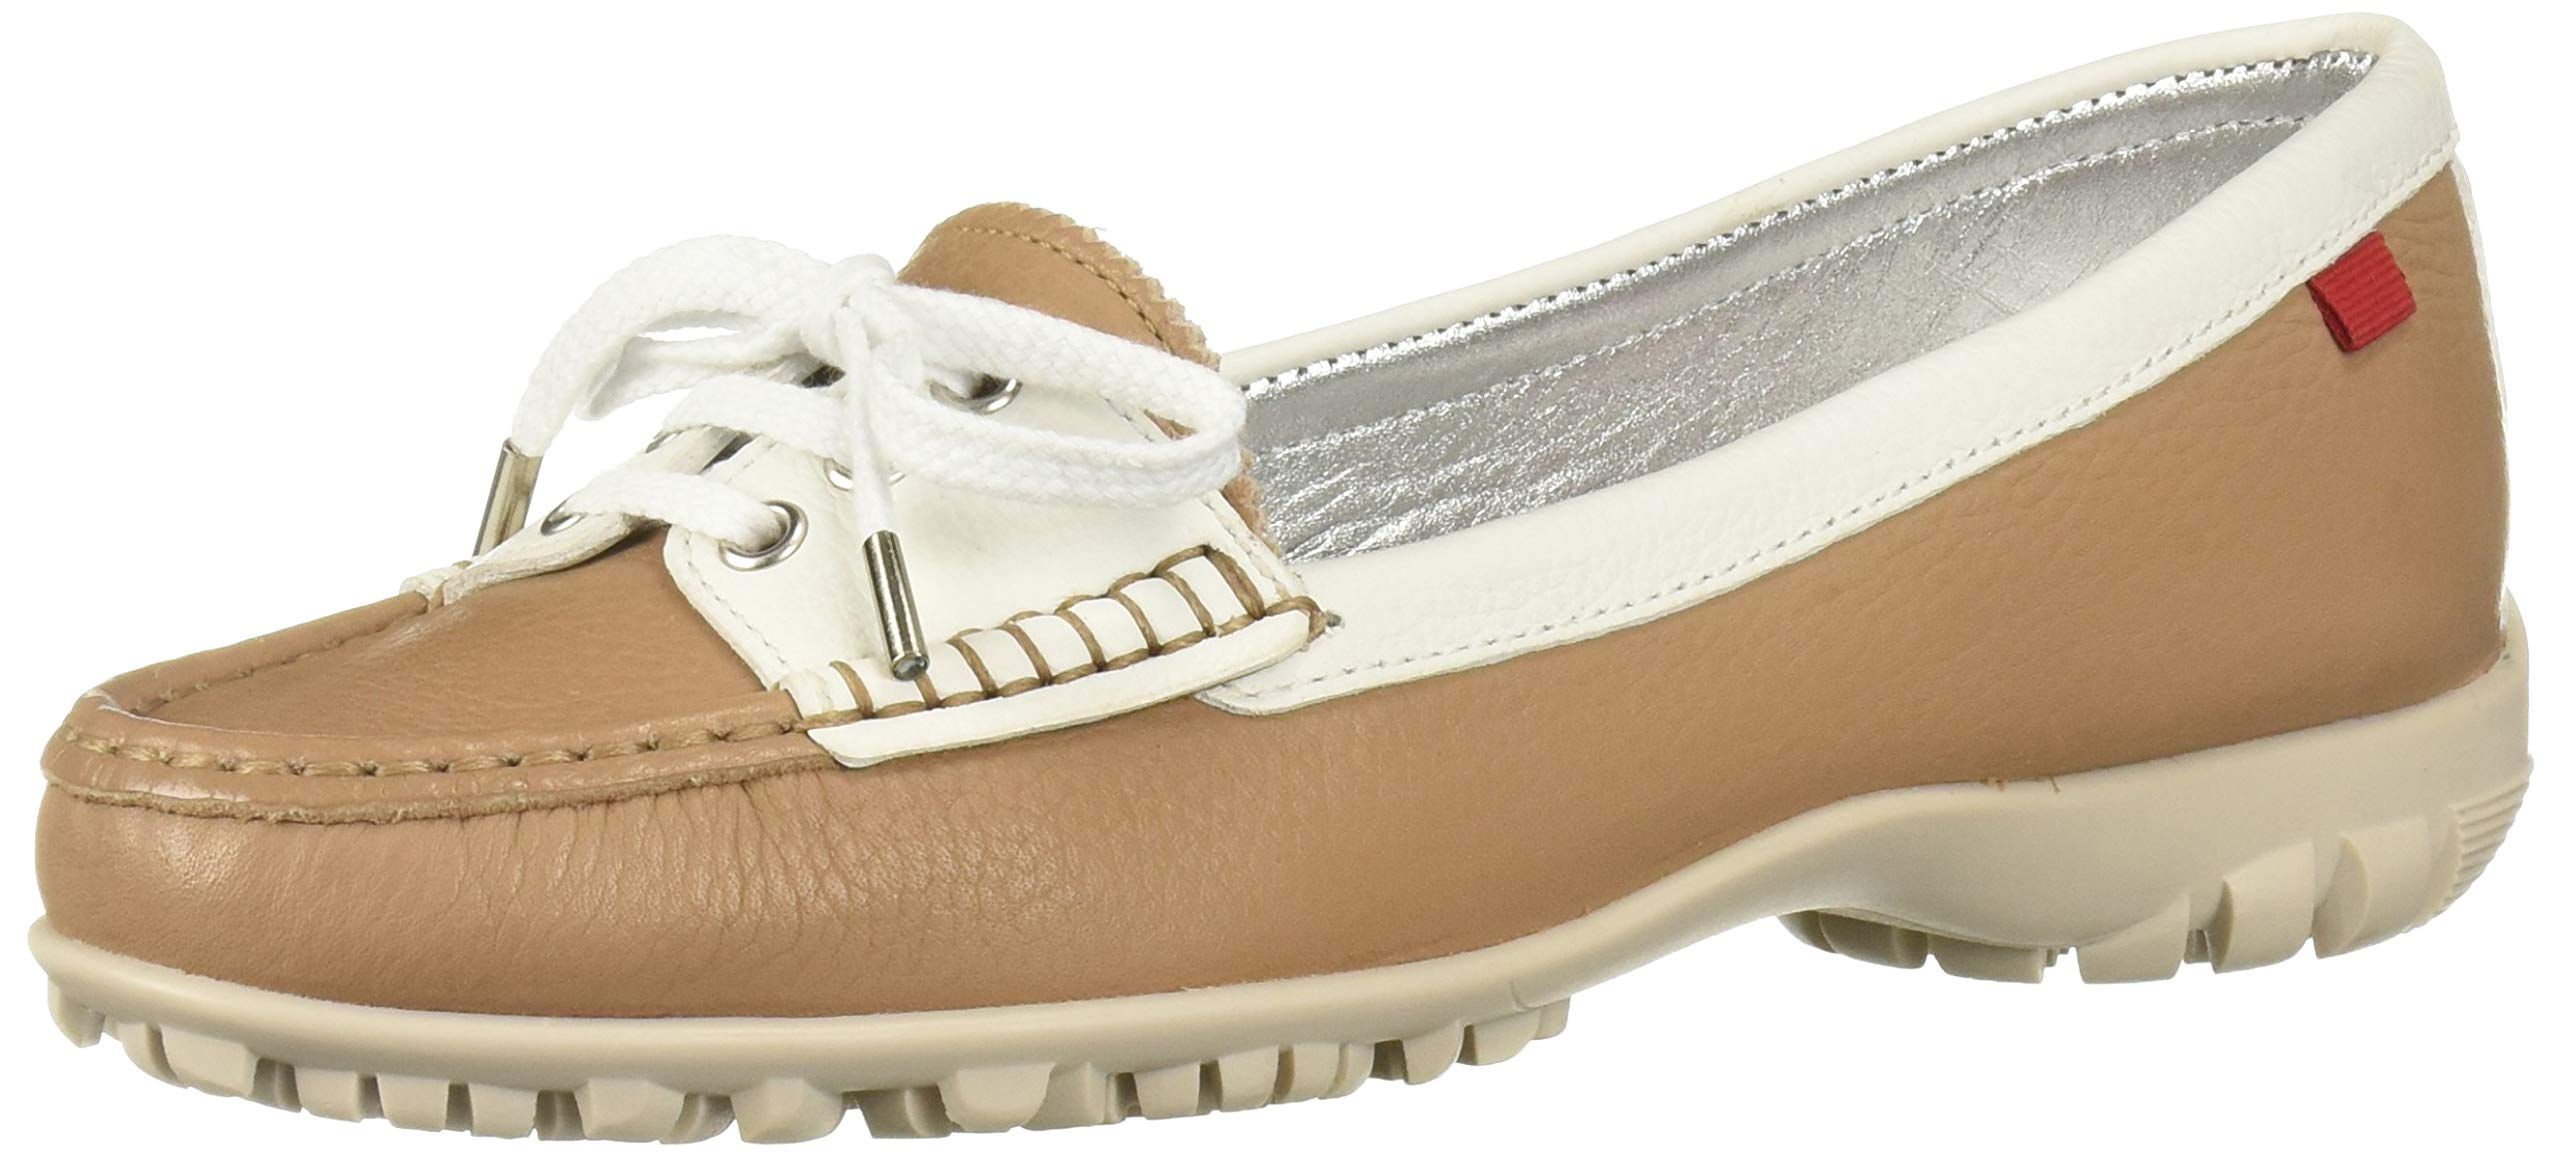 MARC JOSEPH NEW YORK Womens Leather Made in Brazil Liberty Golf Shoe, Sand Grainy, 9 M US by MARC JOSEPH NEW YORK